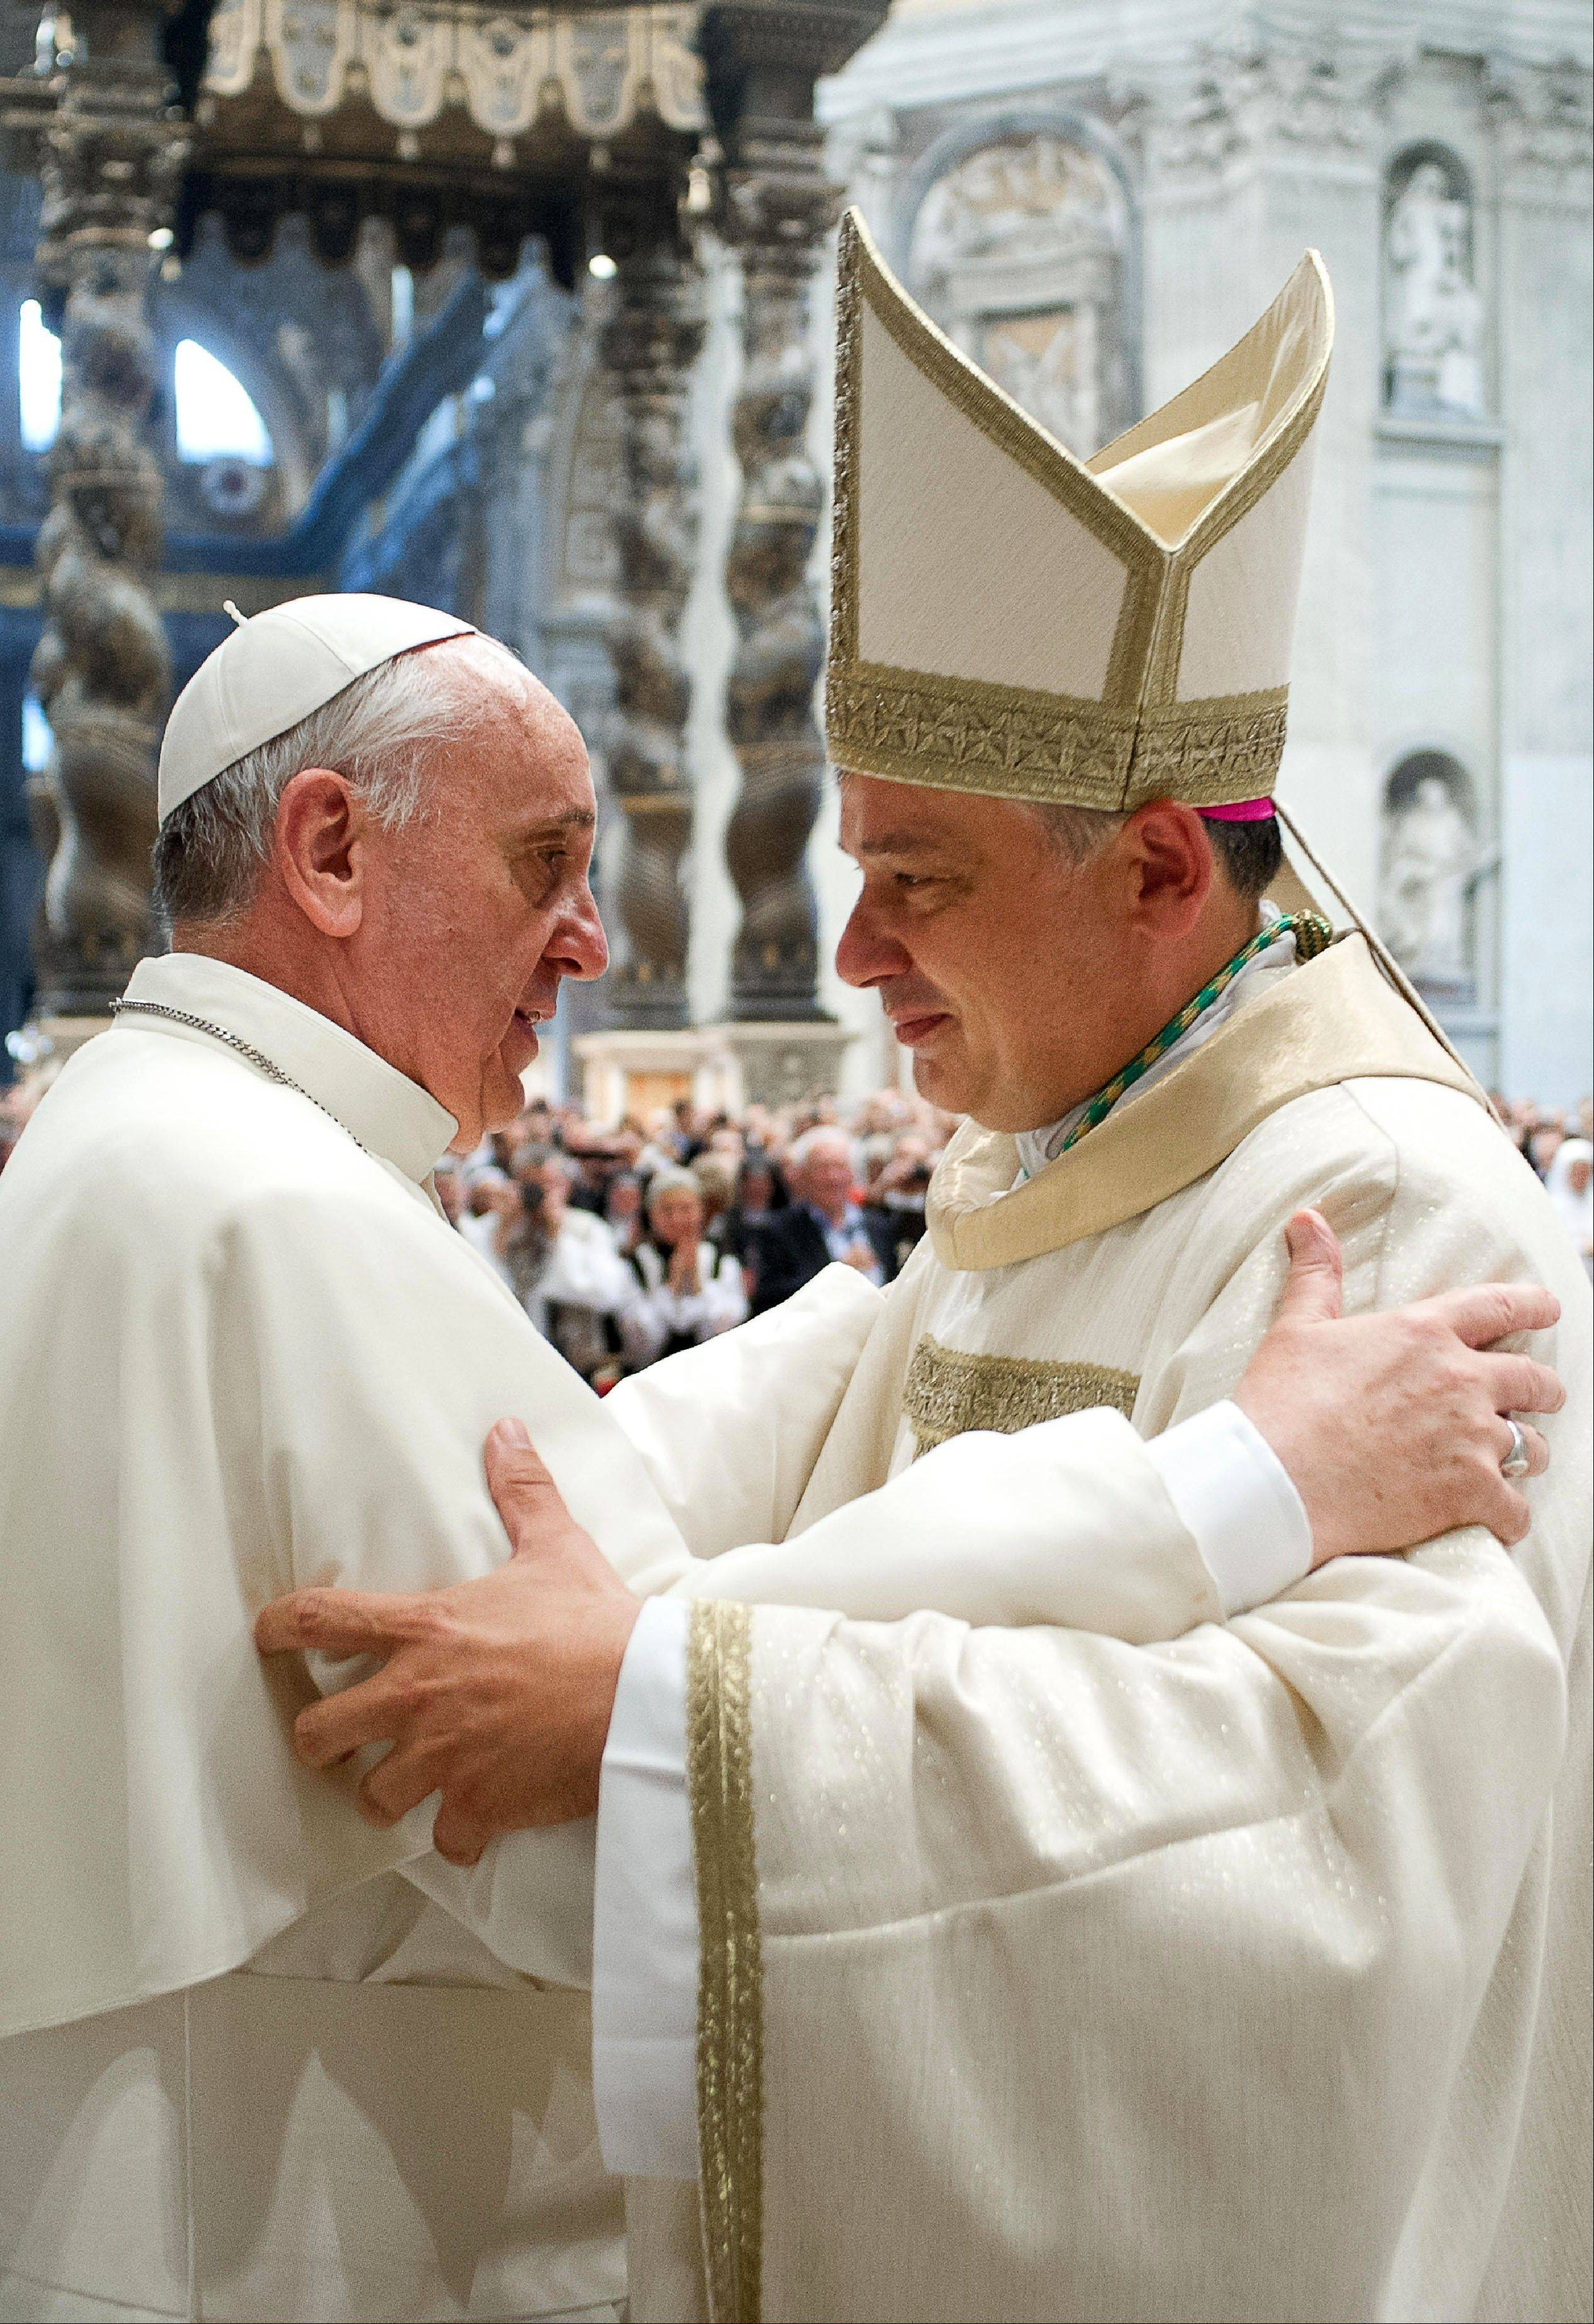 Pope Francis, left, hugs Vatican Almoner, Archbishop Konrad Krajewski, after his episcopal ordination, in St. Peter's Basilica.